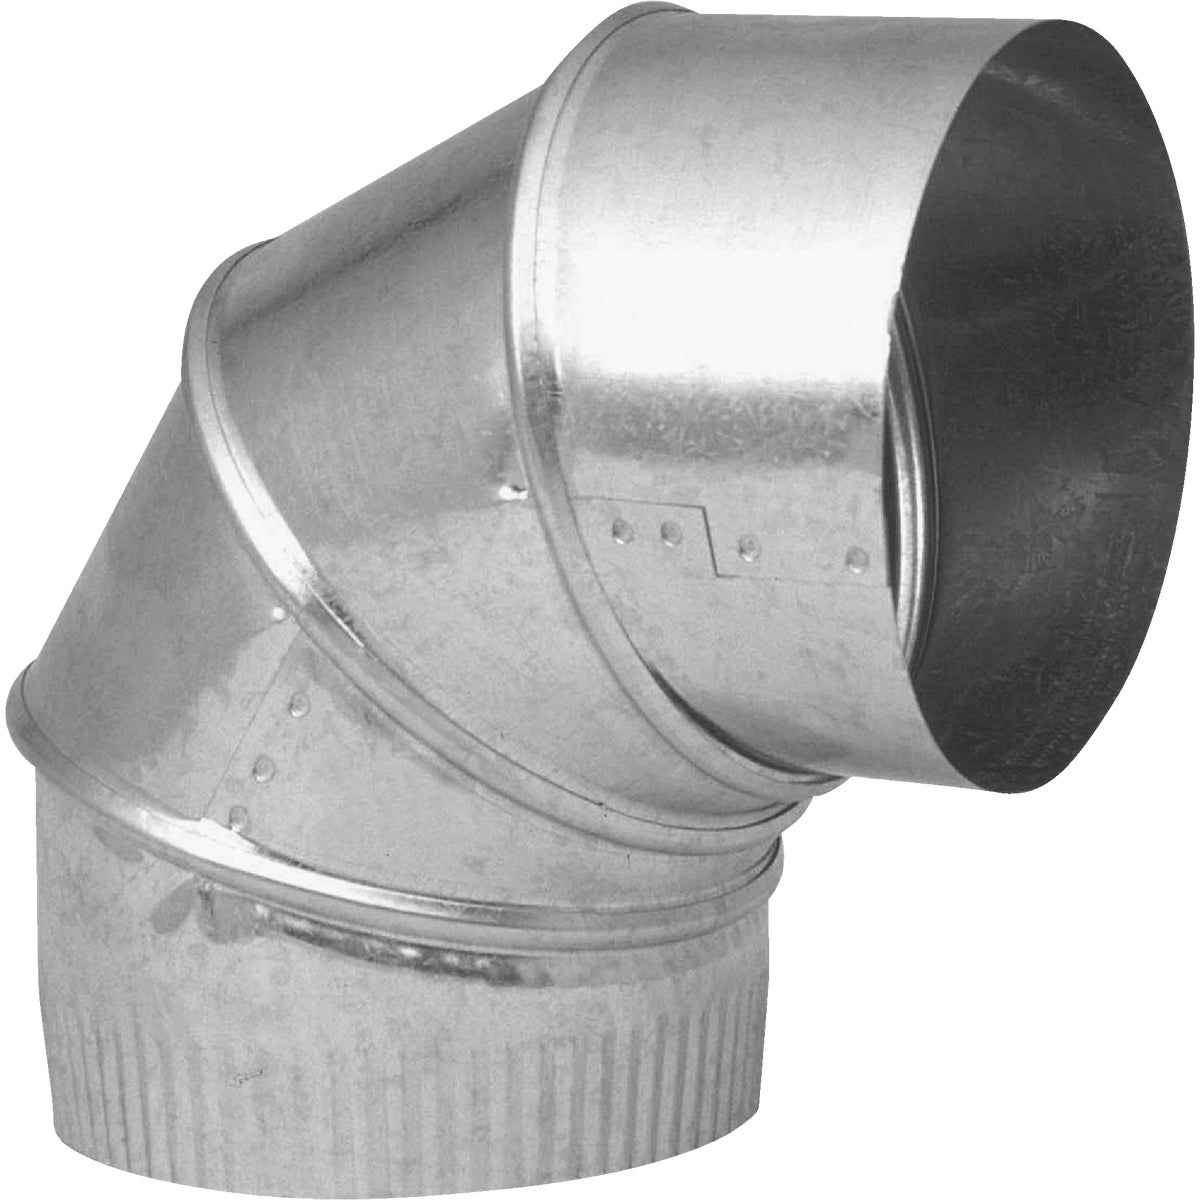 "5"" 28GA GALV ADJ ELBOW - GV0290-C by Imperial Mfg Group"